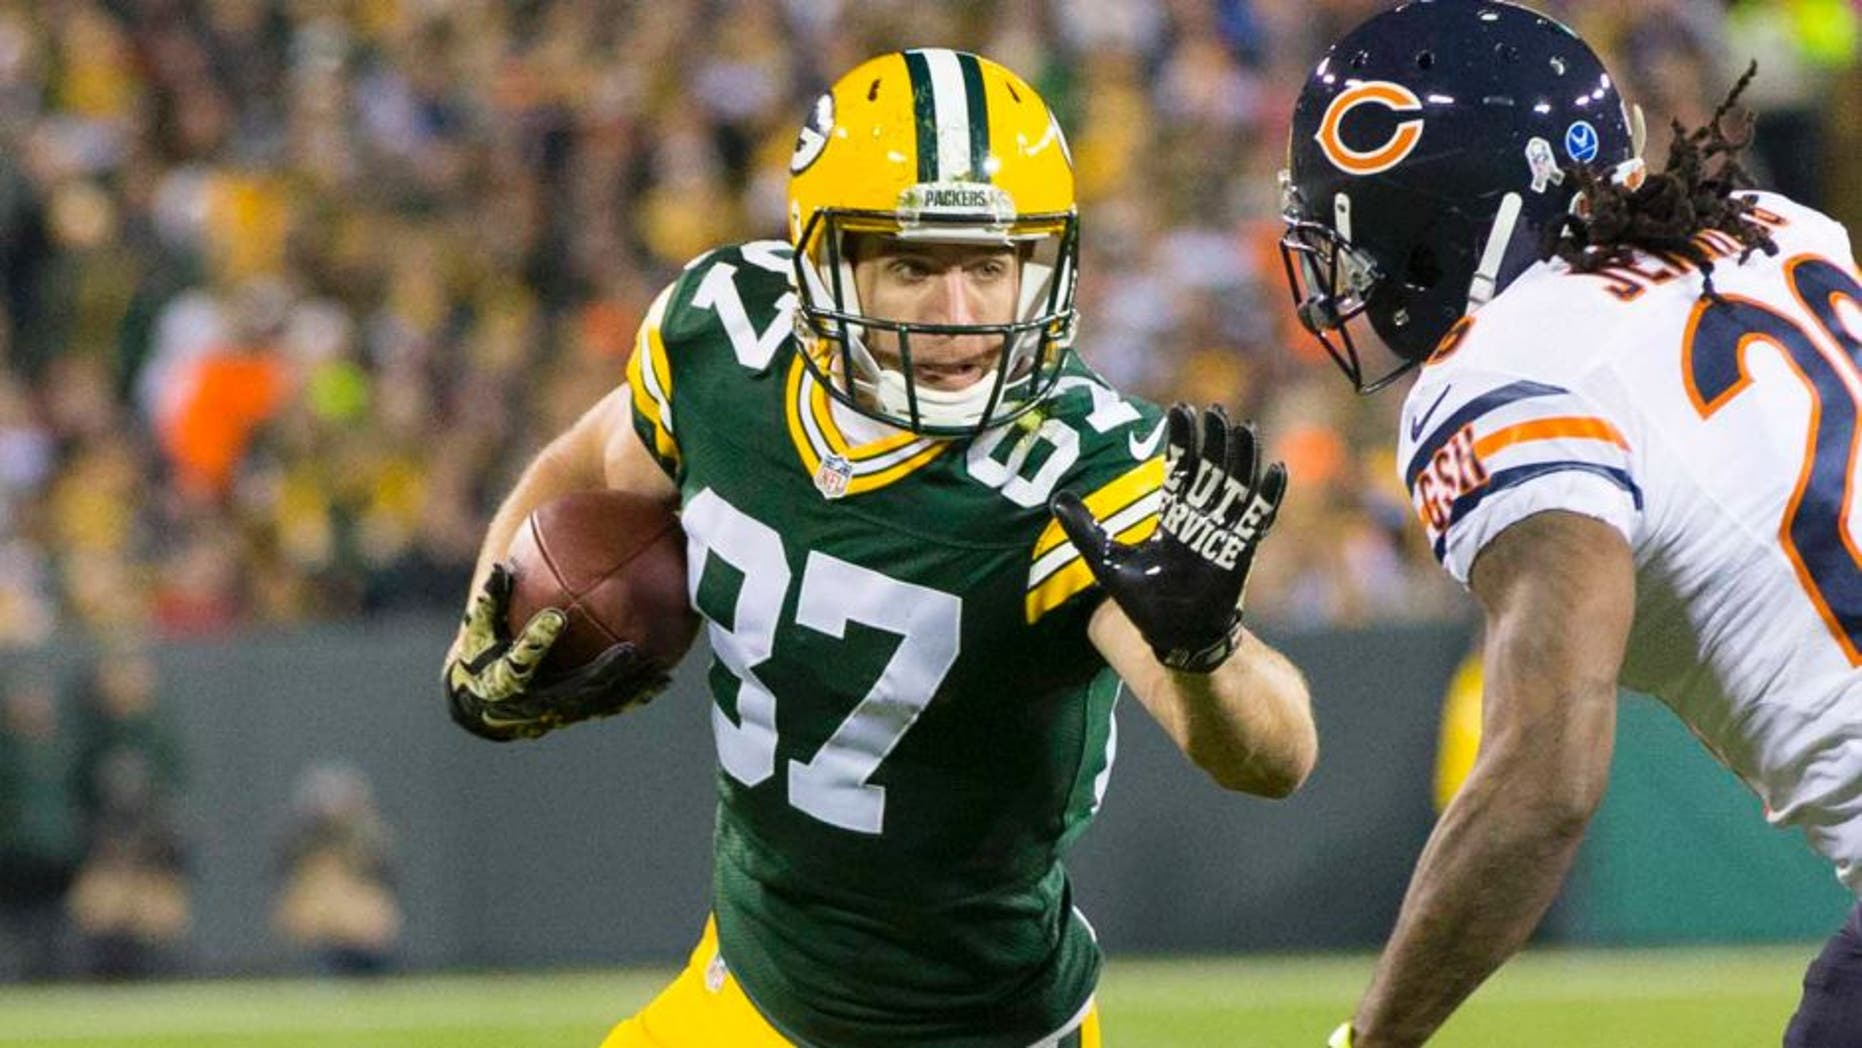 Nov 9, 2014; Green Bay, WI, USA; Green Bay Packers wide receiver Jordy Nelson (87) prepares to stiff arm Chicago Bears cornerback Tim Jennings (26) after catching a pass during the first quarter at Lambeau Field. Mandatory Credit: Jeff Hanisch-USA TODAY Sports